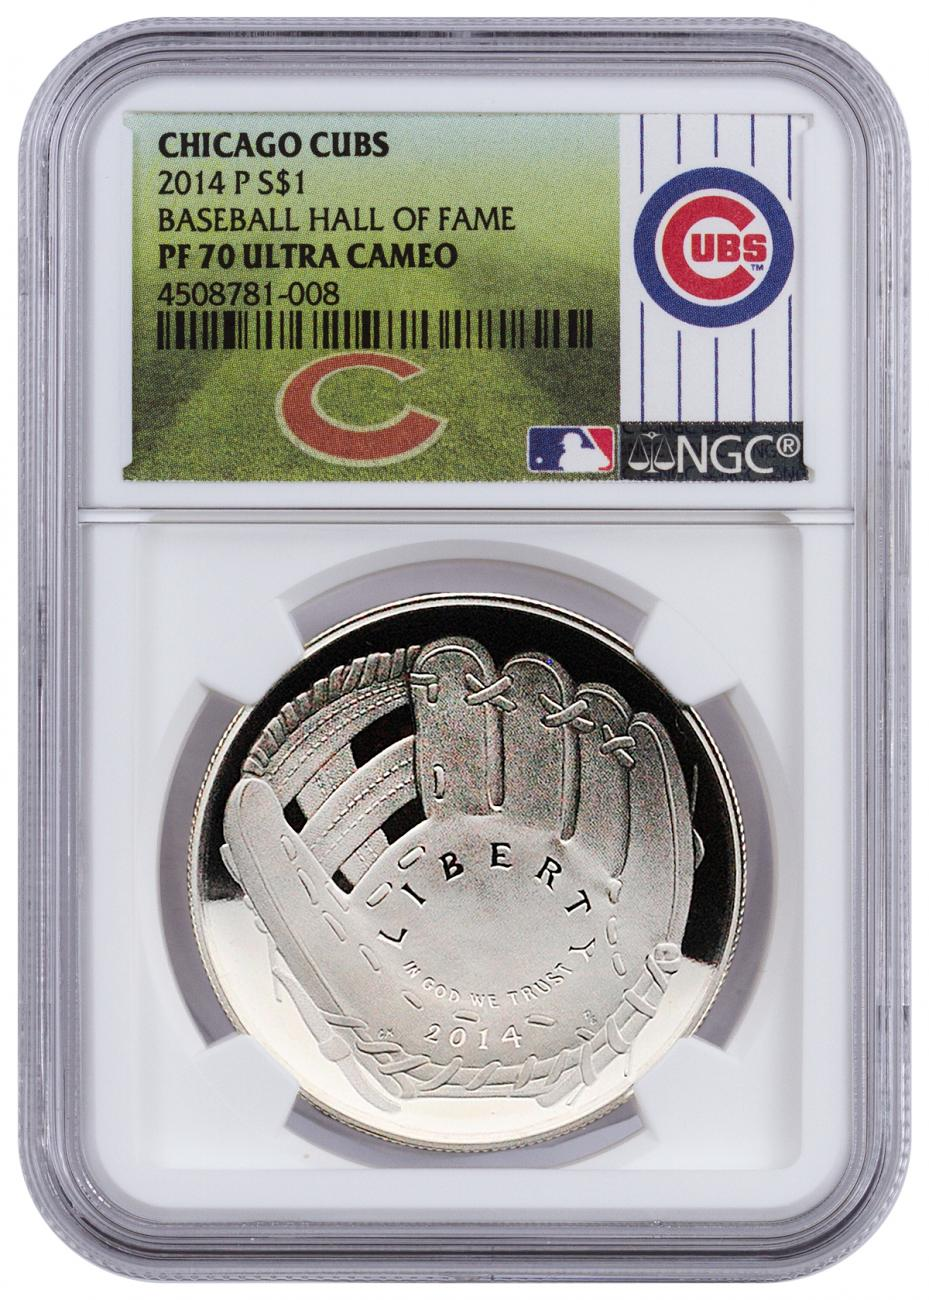 2014-P $1 Proof Domed Silver National Baseball Hall of Fame Commemorative - NGC PF70 UC (Chicago Cubs Label)